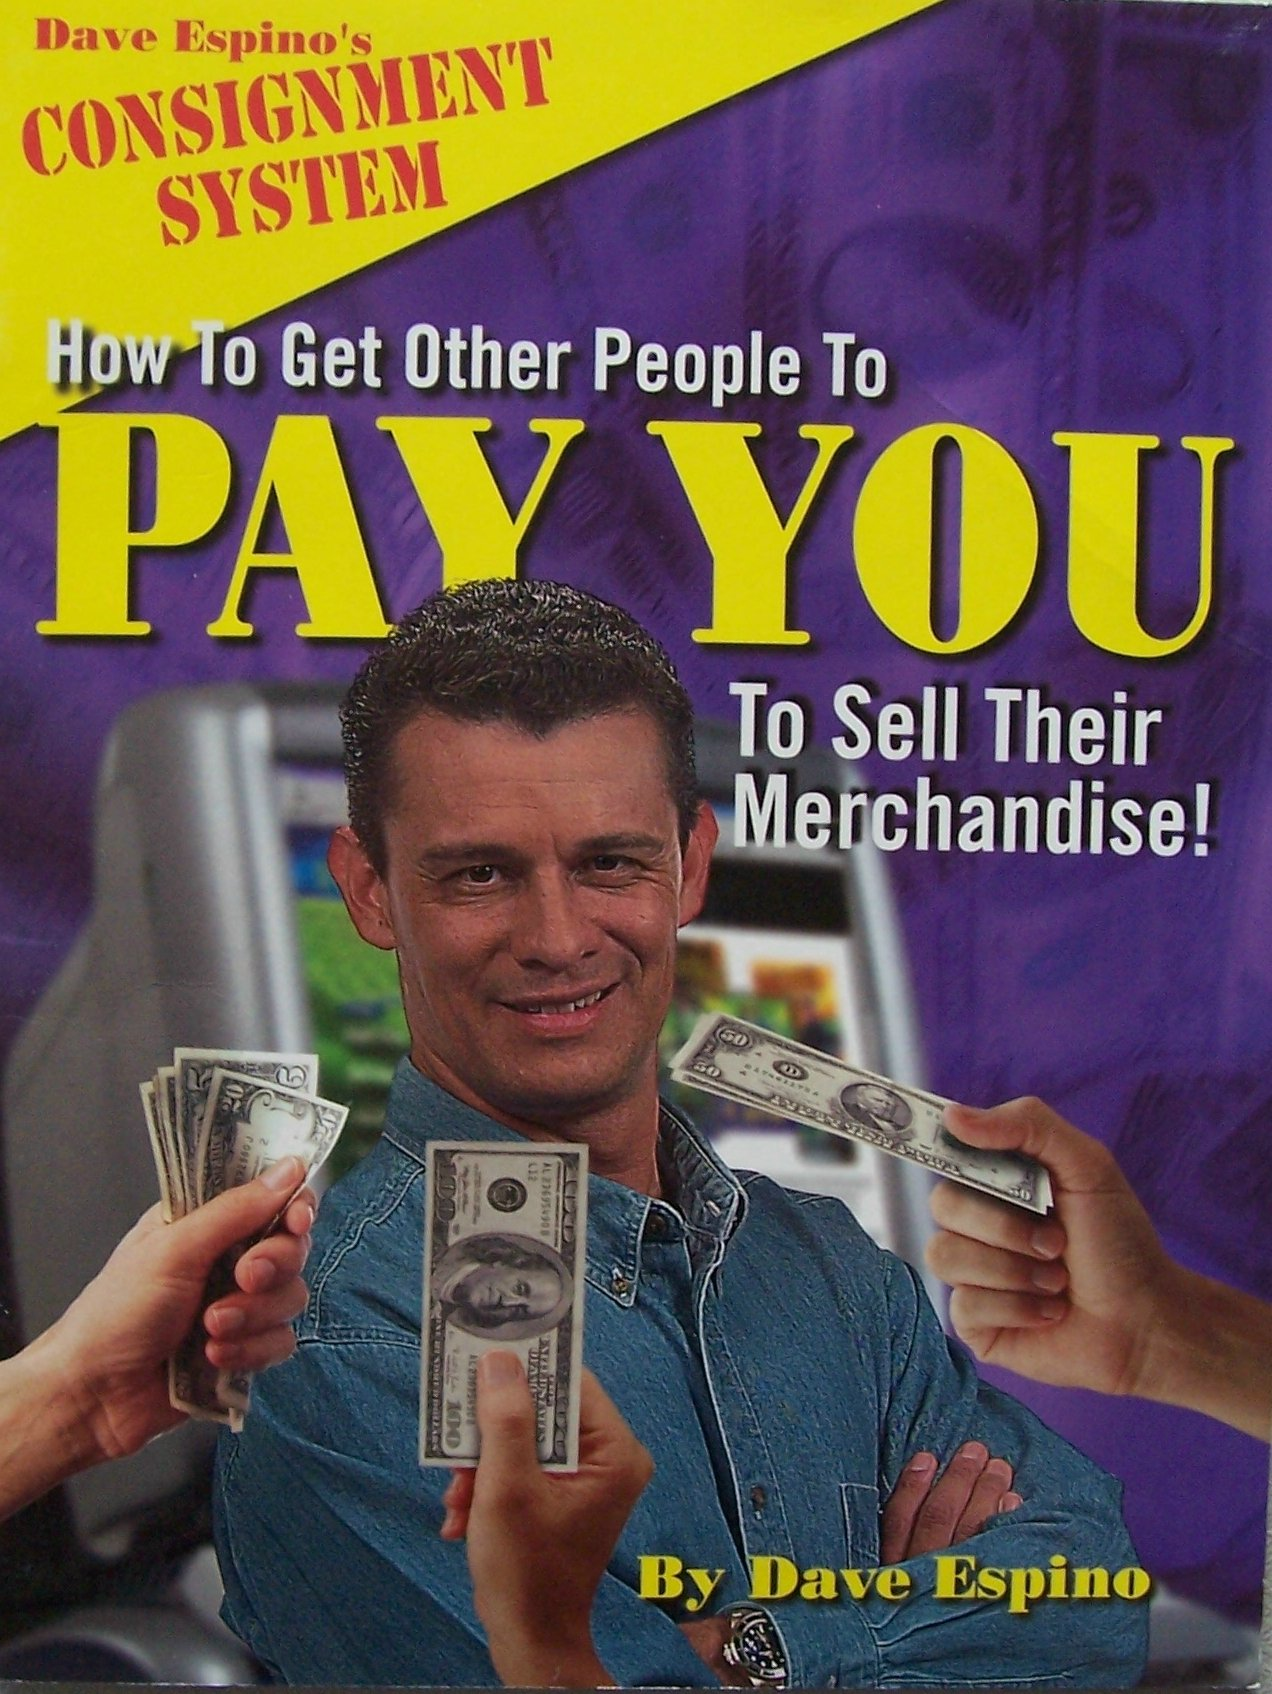 Download How to Get Other People to PAY YOU To Sell Their Merchandise! (Dave Espino's Consignment System) PDF